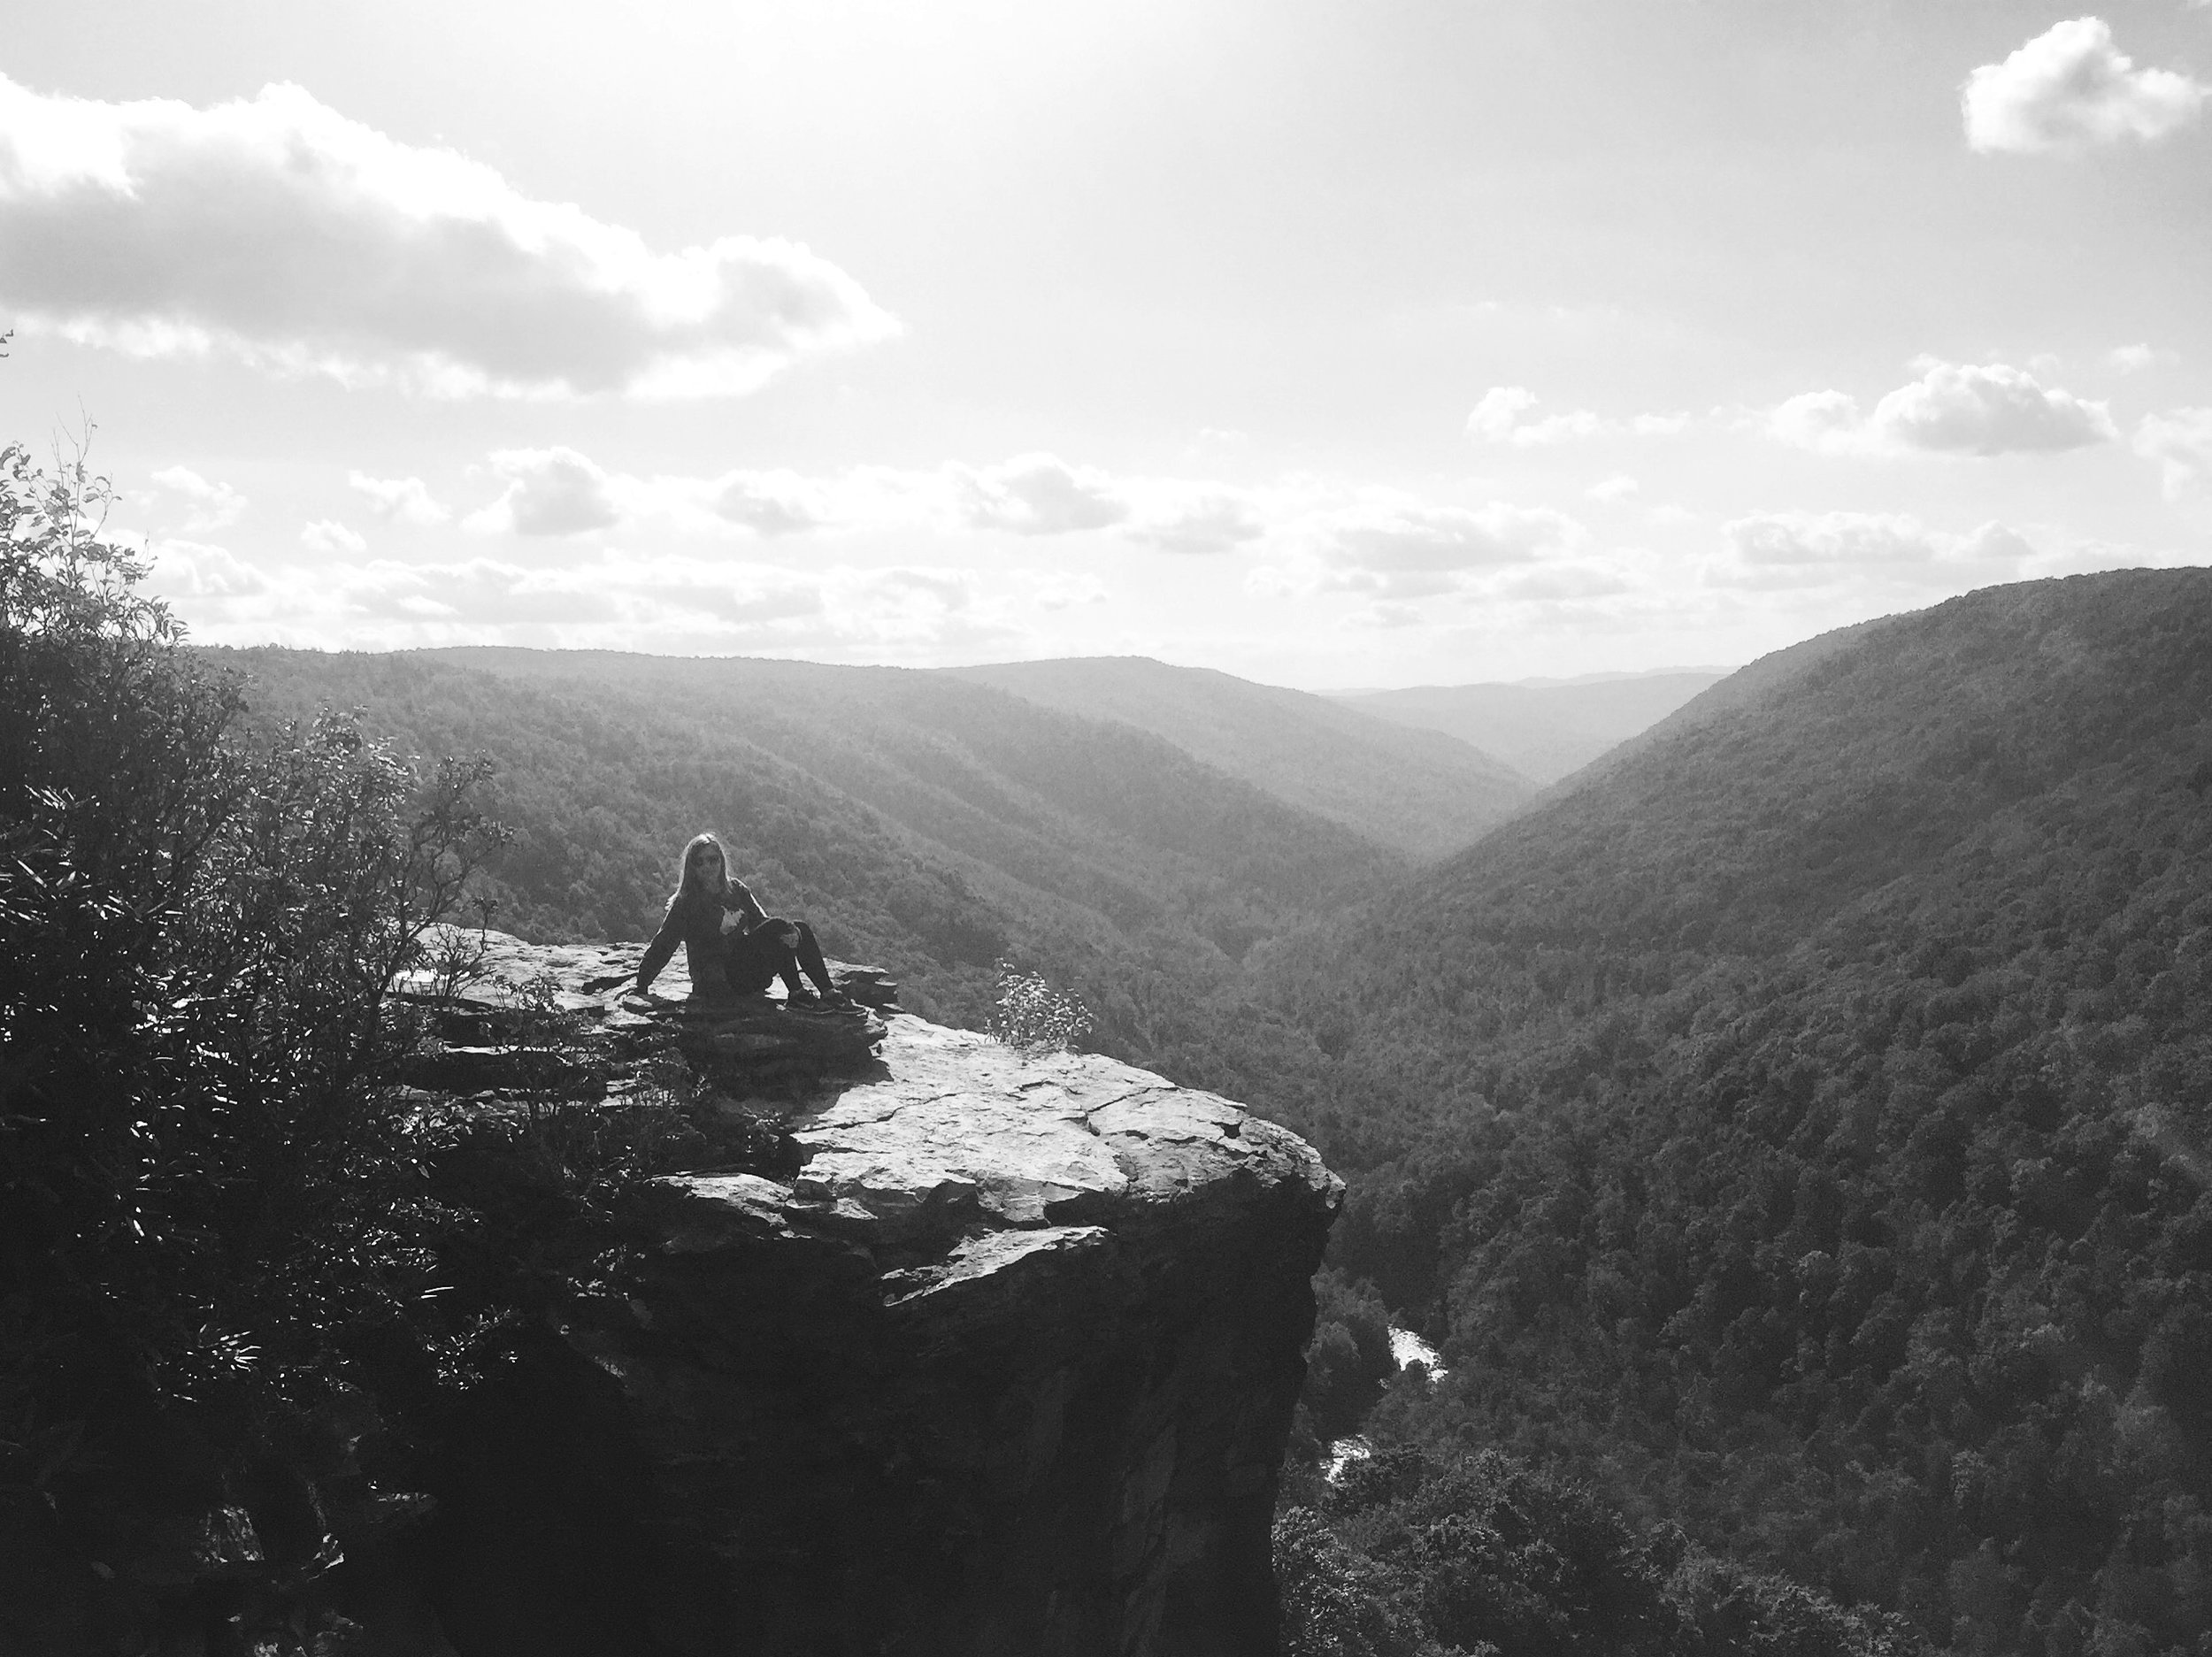 Copy of Me at Lindy Point!